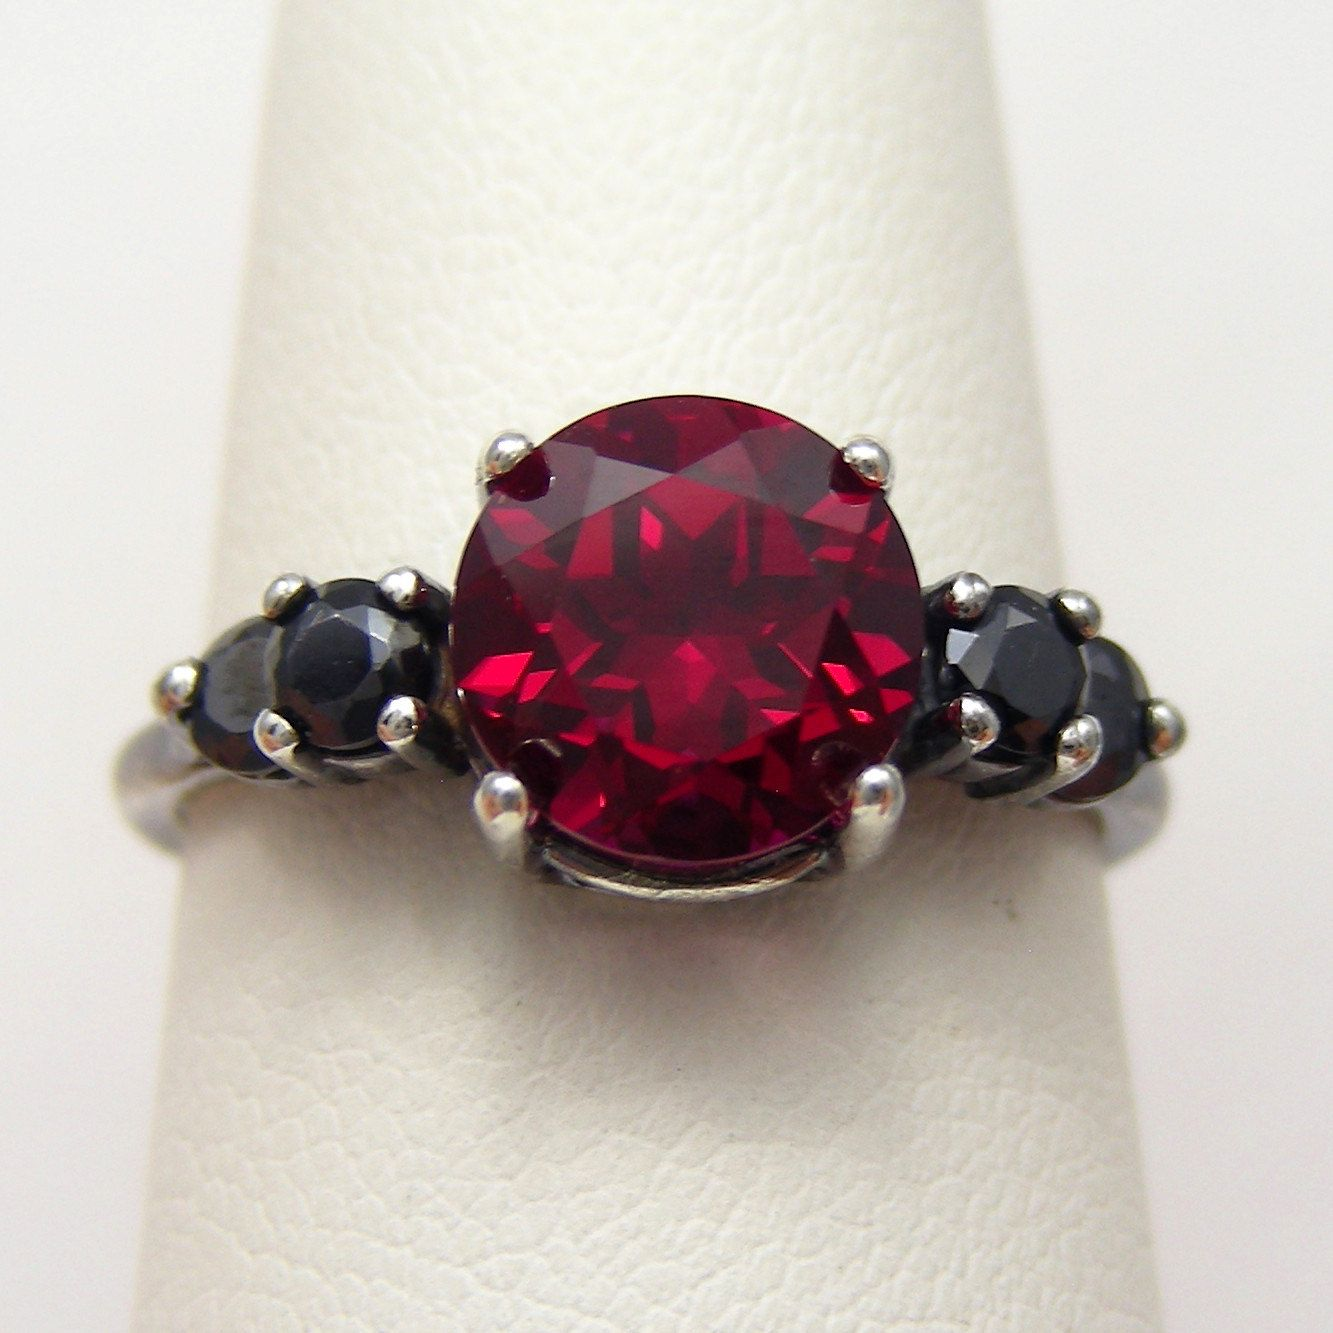 deadpool wedding ring Unique Engagement Ring Unique Wedding Ring 2ct Blood Red Ruby Accented Black Silver Oxidized